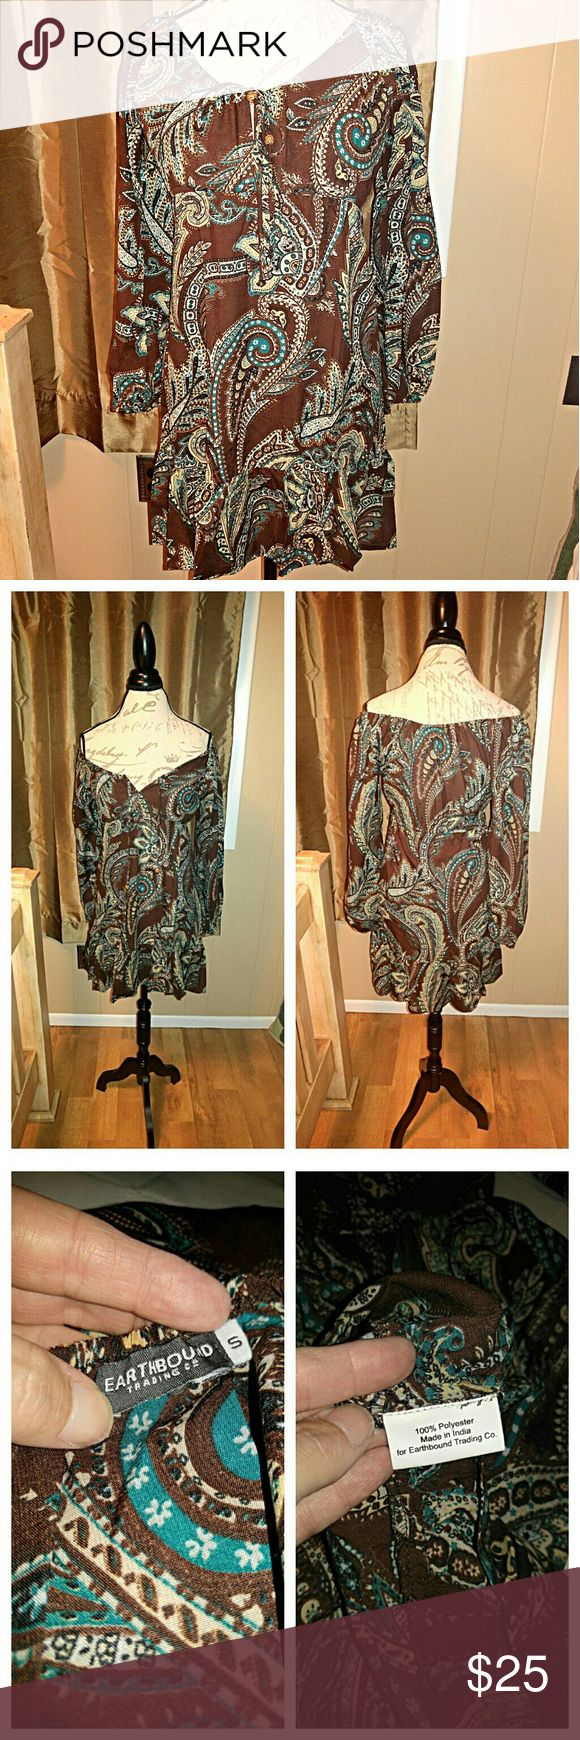 🌸Flash Sale🌸  Earthbound Dress Supercute, earthbound dress, size small. Can be worn as off shoulder dress, and looks great with leggings! Has only been worn a few times, still looks brand new, from smoke free home. Earthbound Dresses Mini